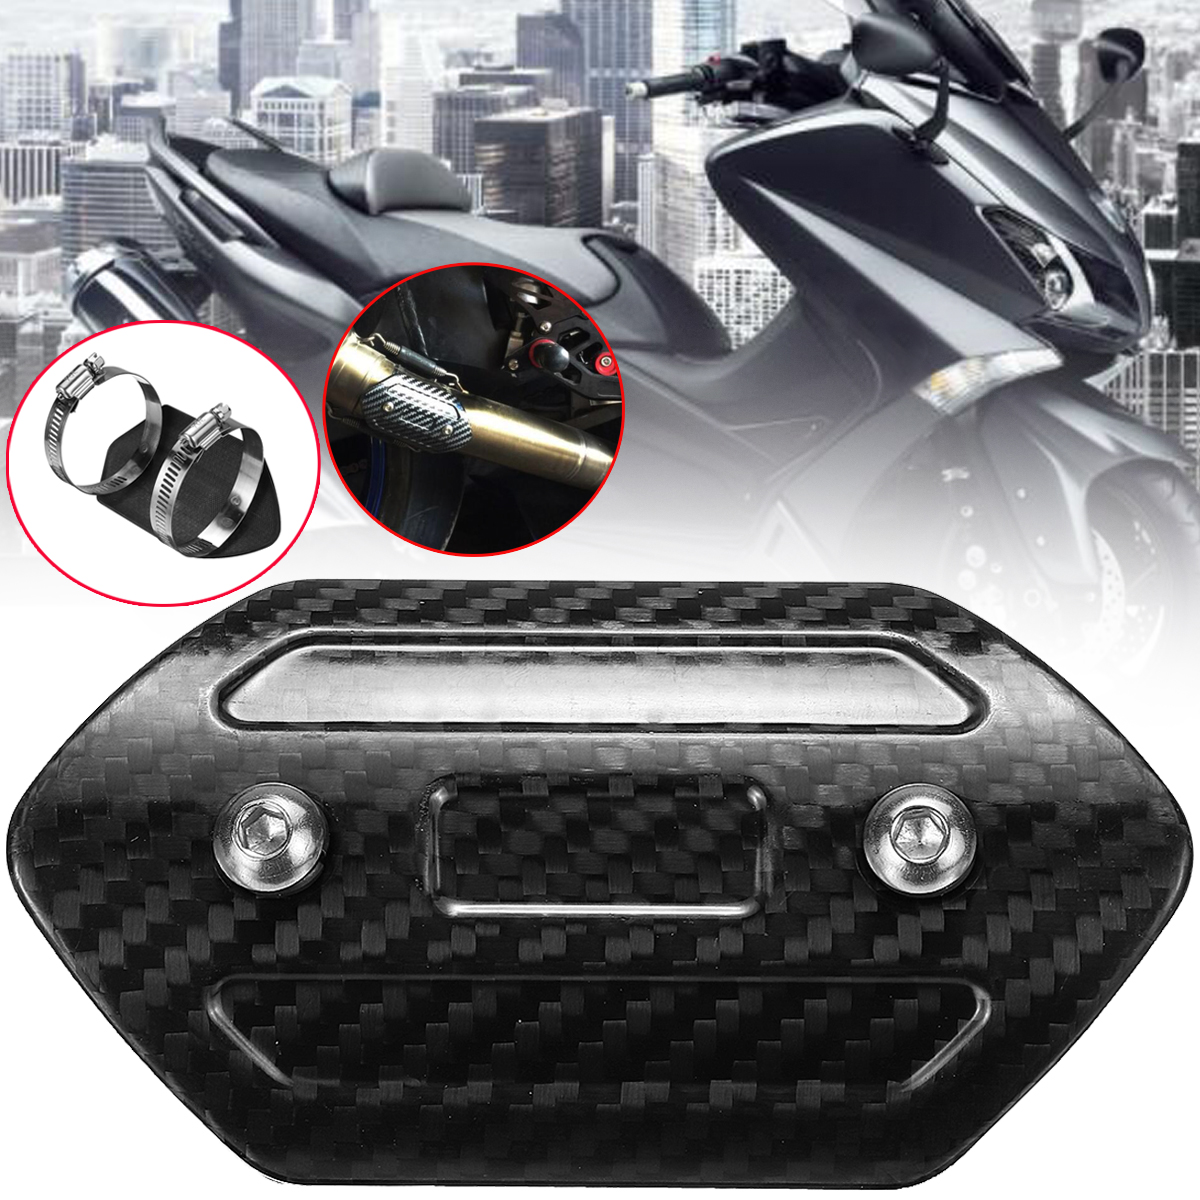 Universal Motorcycle Exhaust Muffler Cover Carbon Fiber Color Protector Heat Shield Cover Guard for Motorcyle Motorcros 110x50mm ...